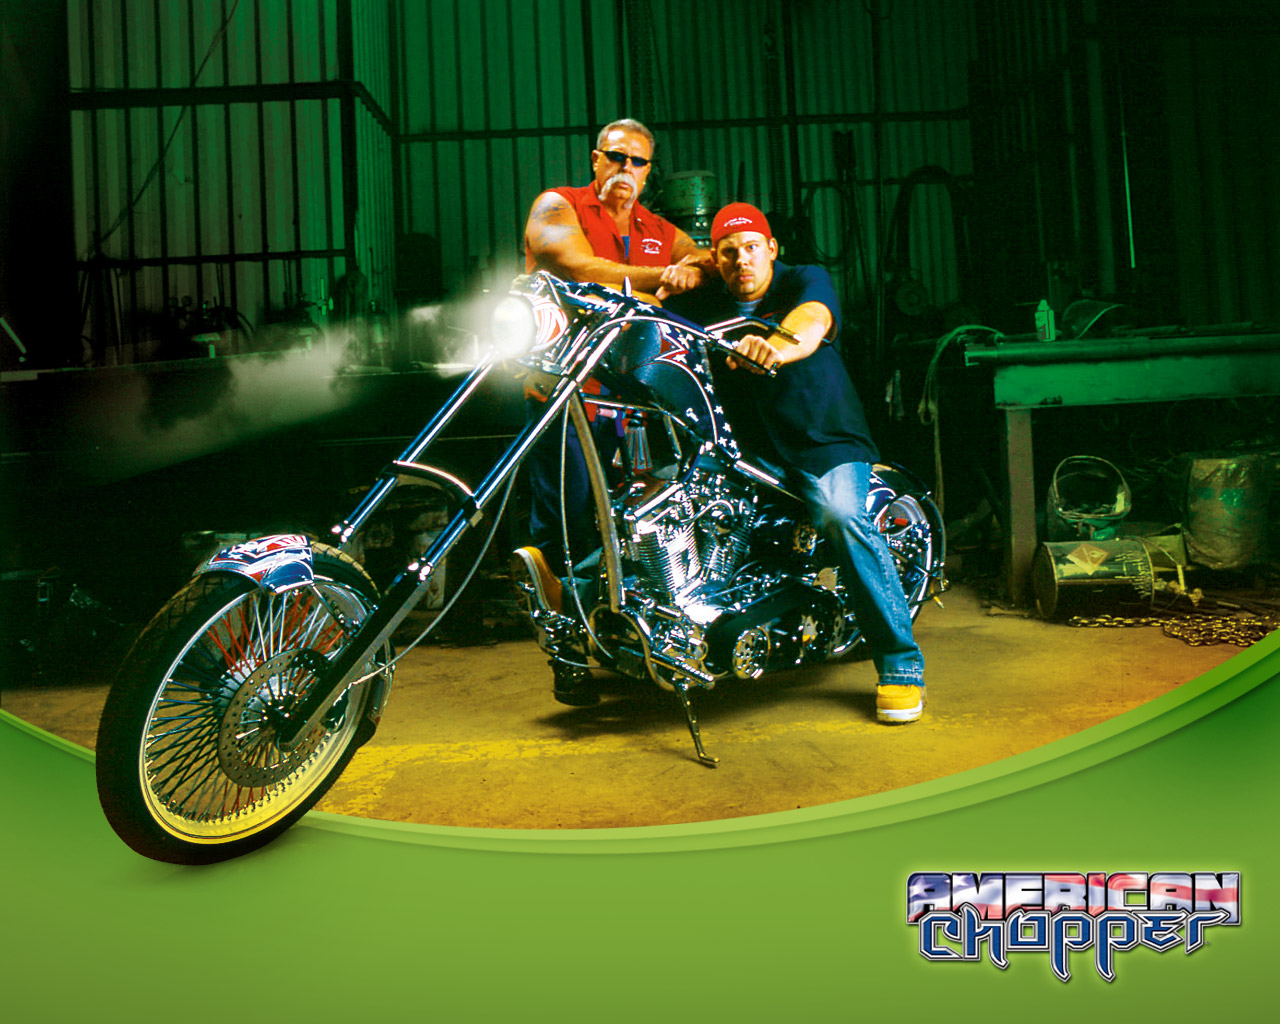 American chopper   Orange County Choppers Wallpaper 124425 1280x1024